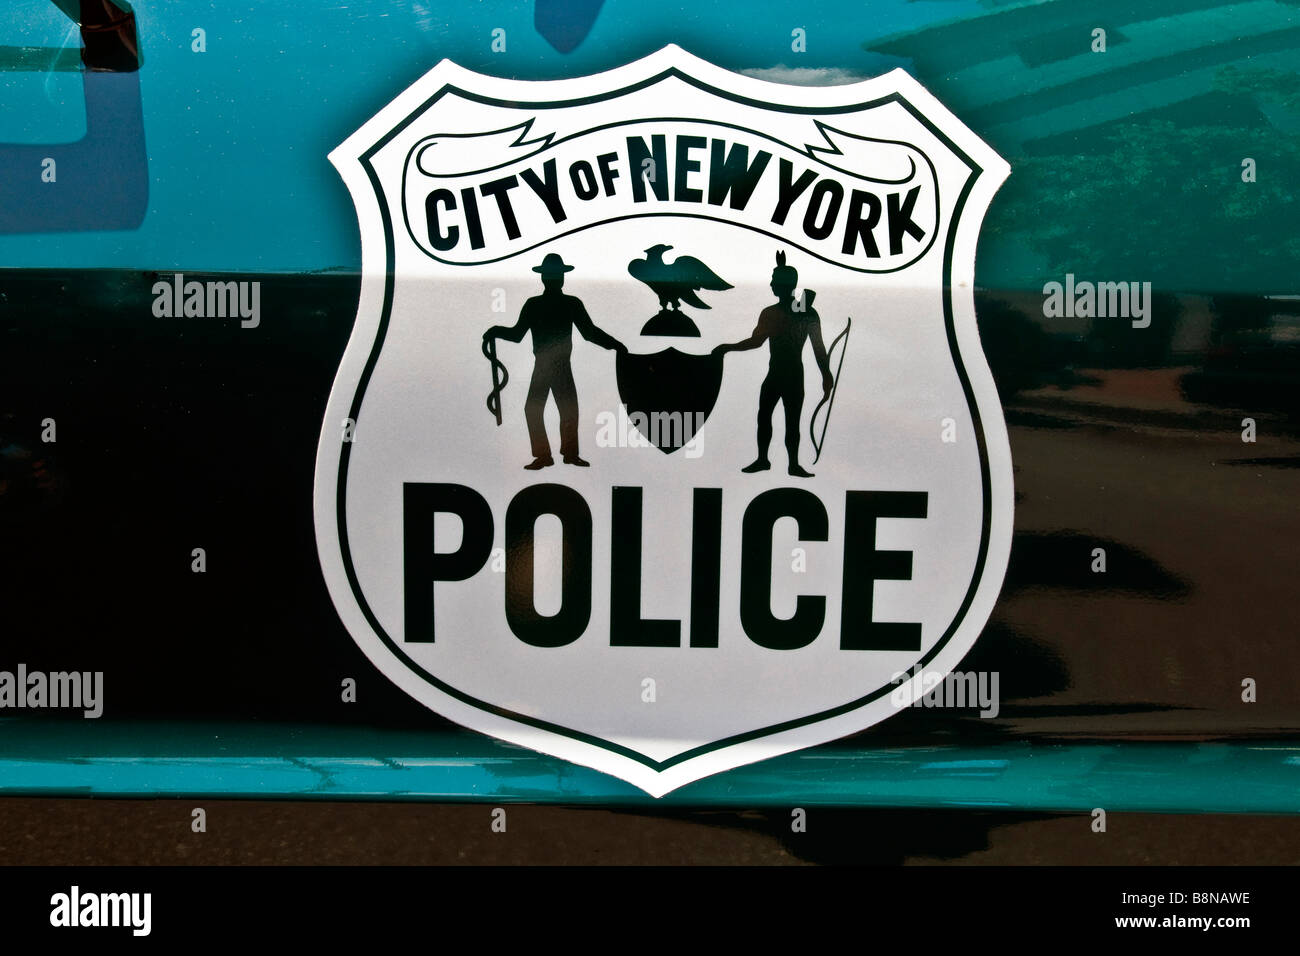 Close-up of emblem on the door of a City of New York Police vehicle at The new York city police museum - Stock Image